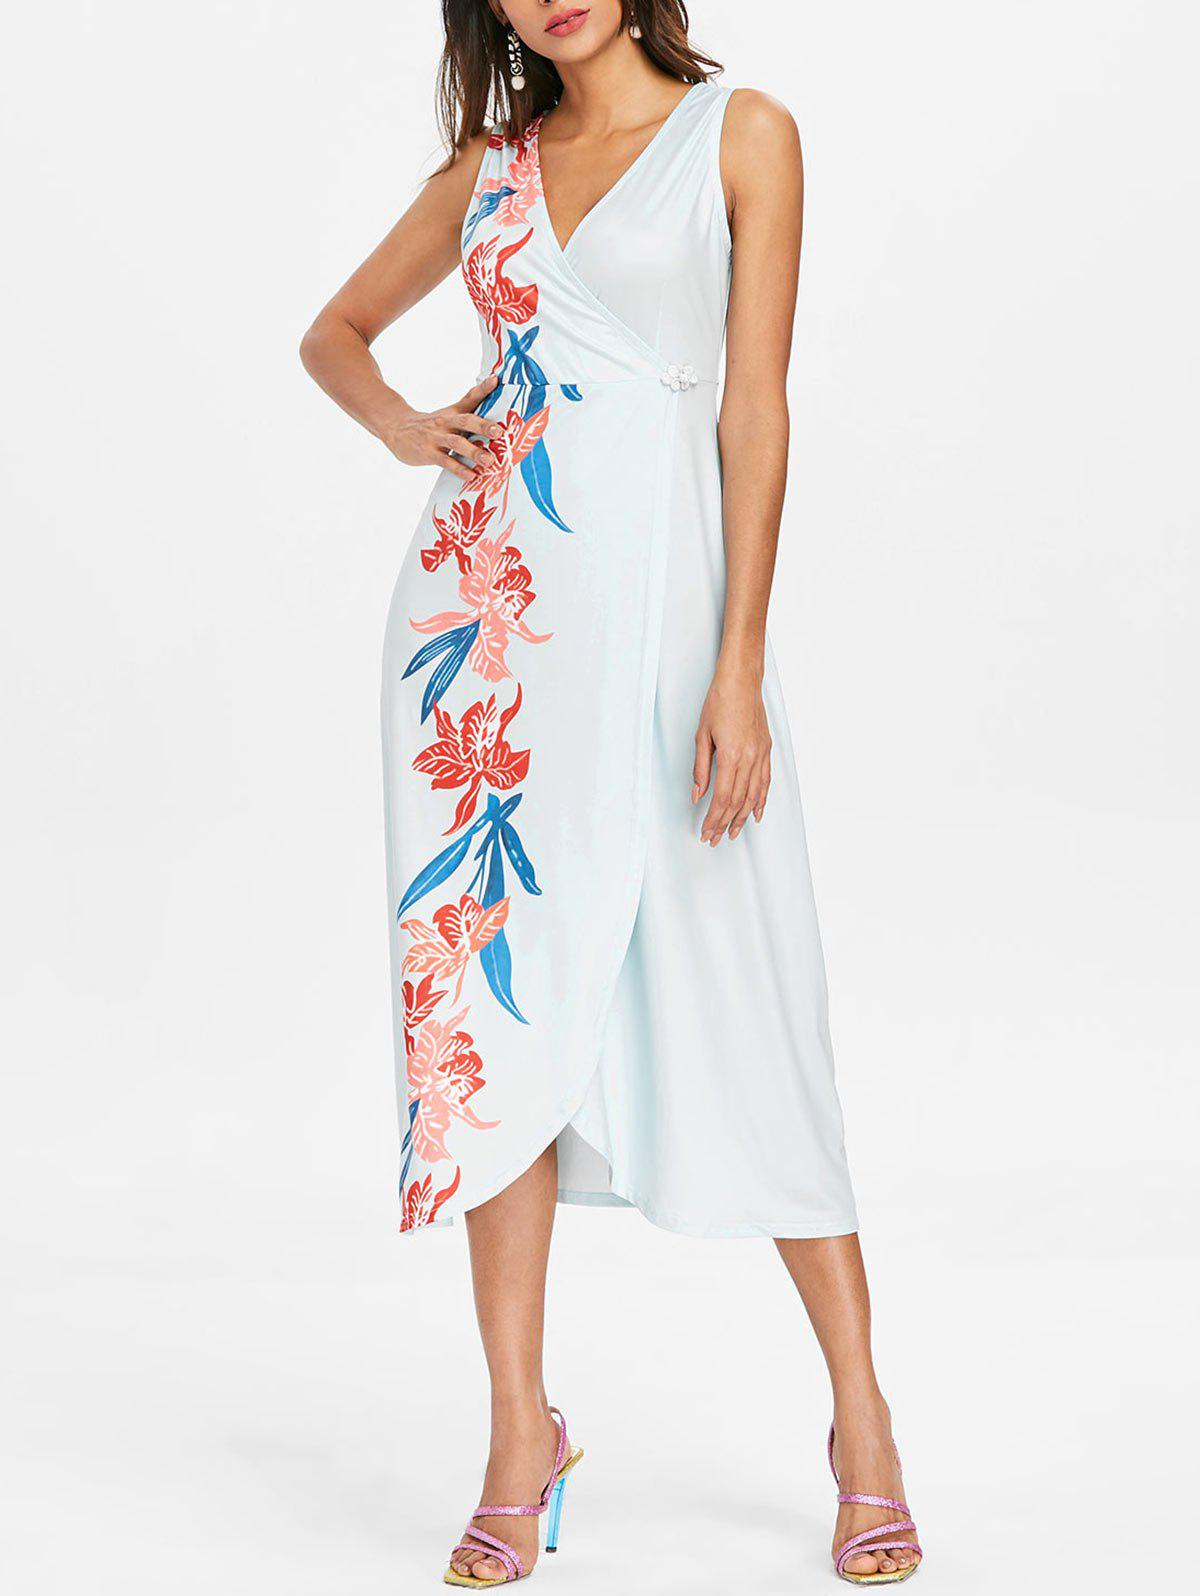 New Sleeveless Plunging Neck Surplice Dress